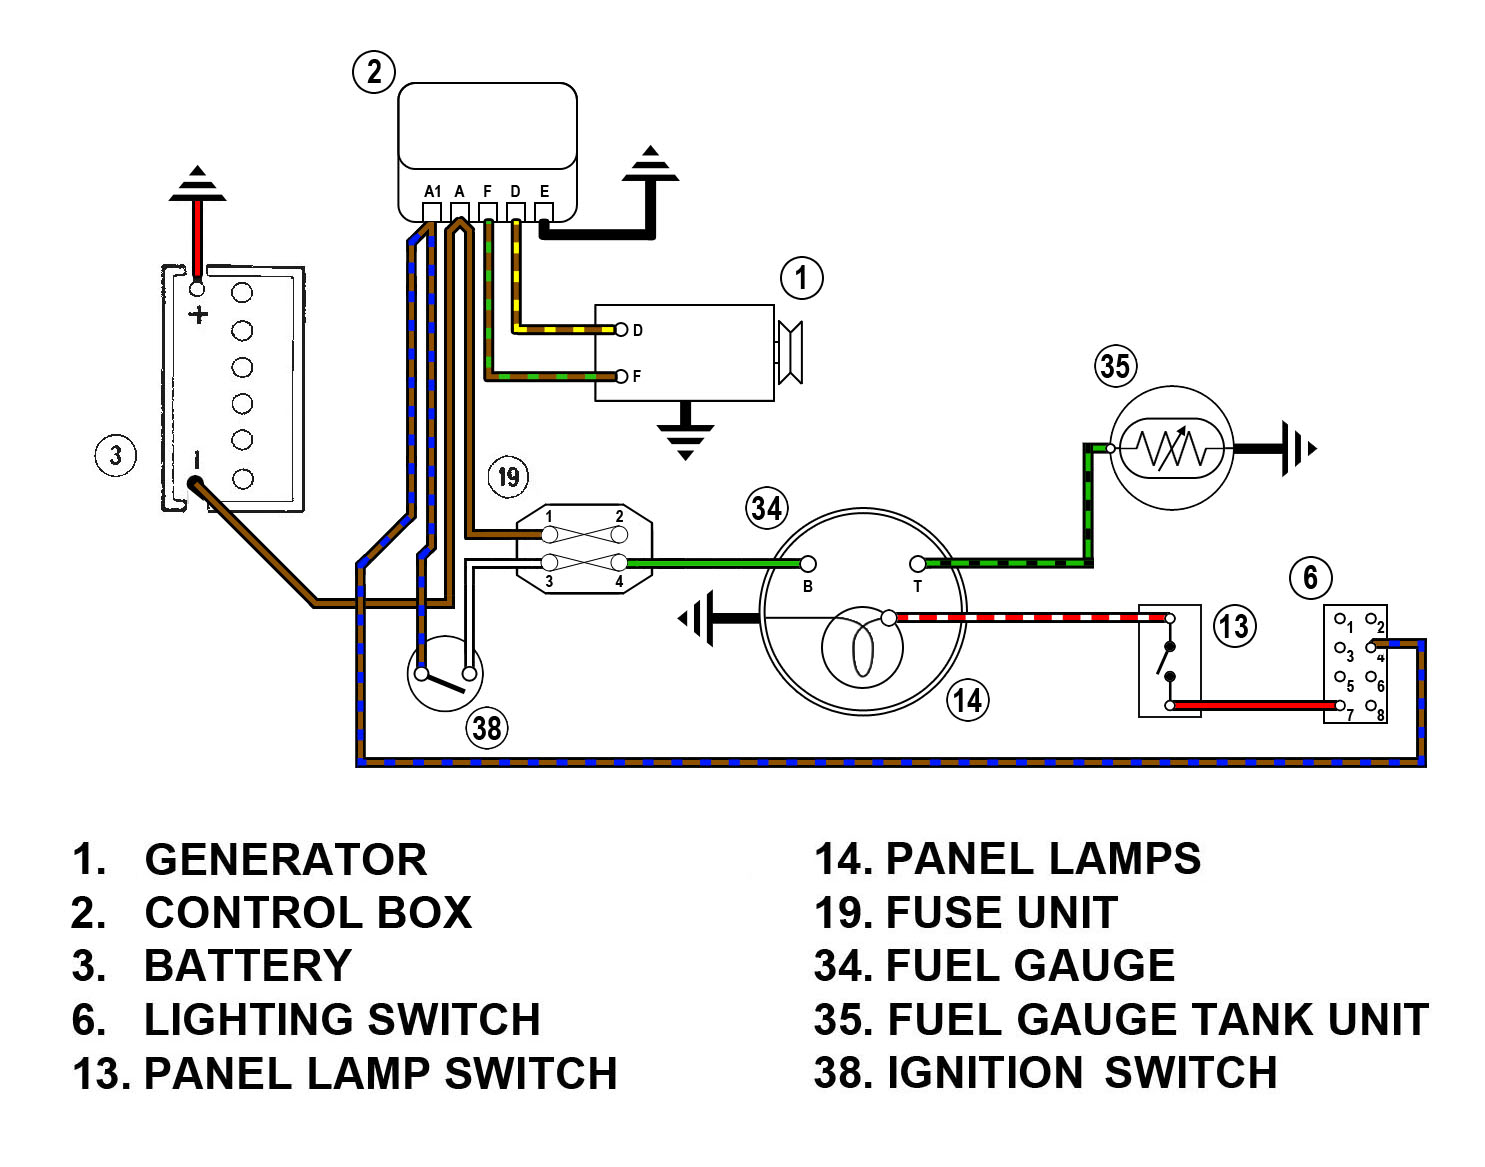 Honeywell T651a3018 Wiring Diagram Gallery Sample Prestige Download Luxury Equus Fuel Gauge